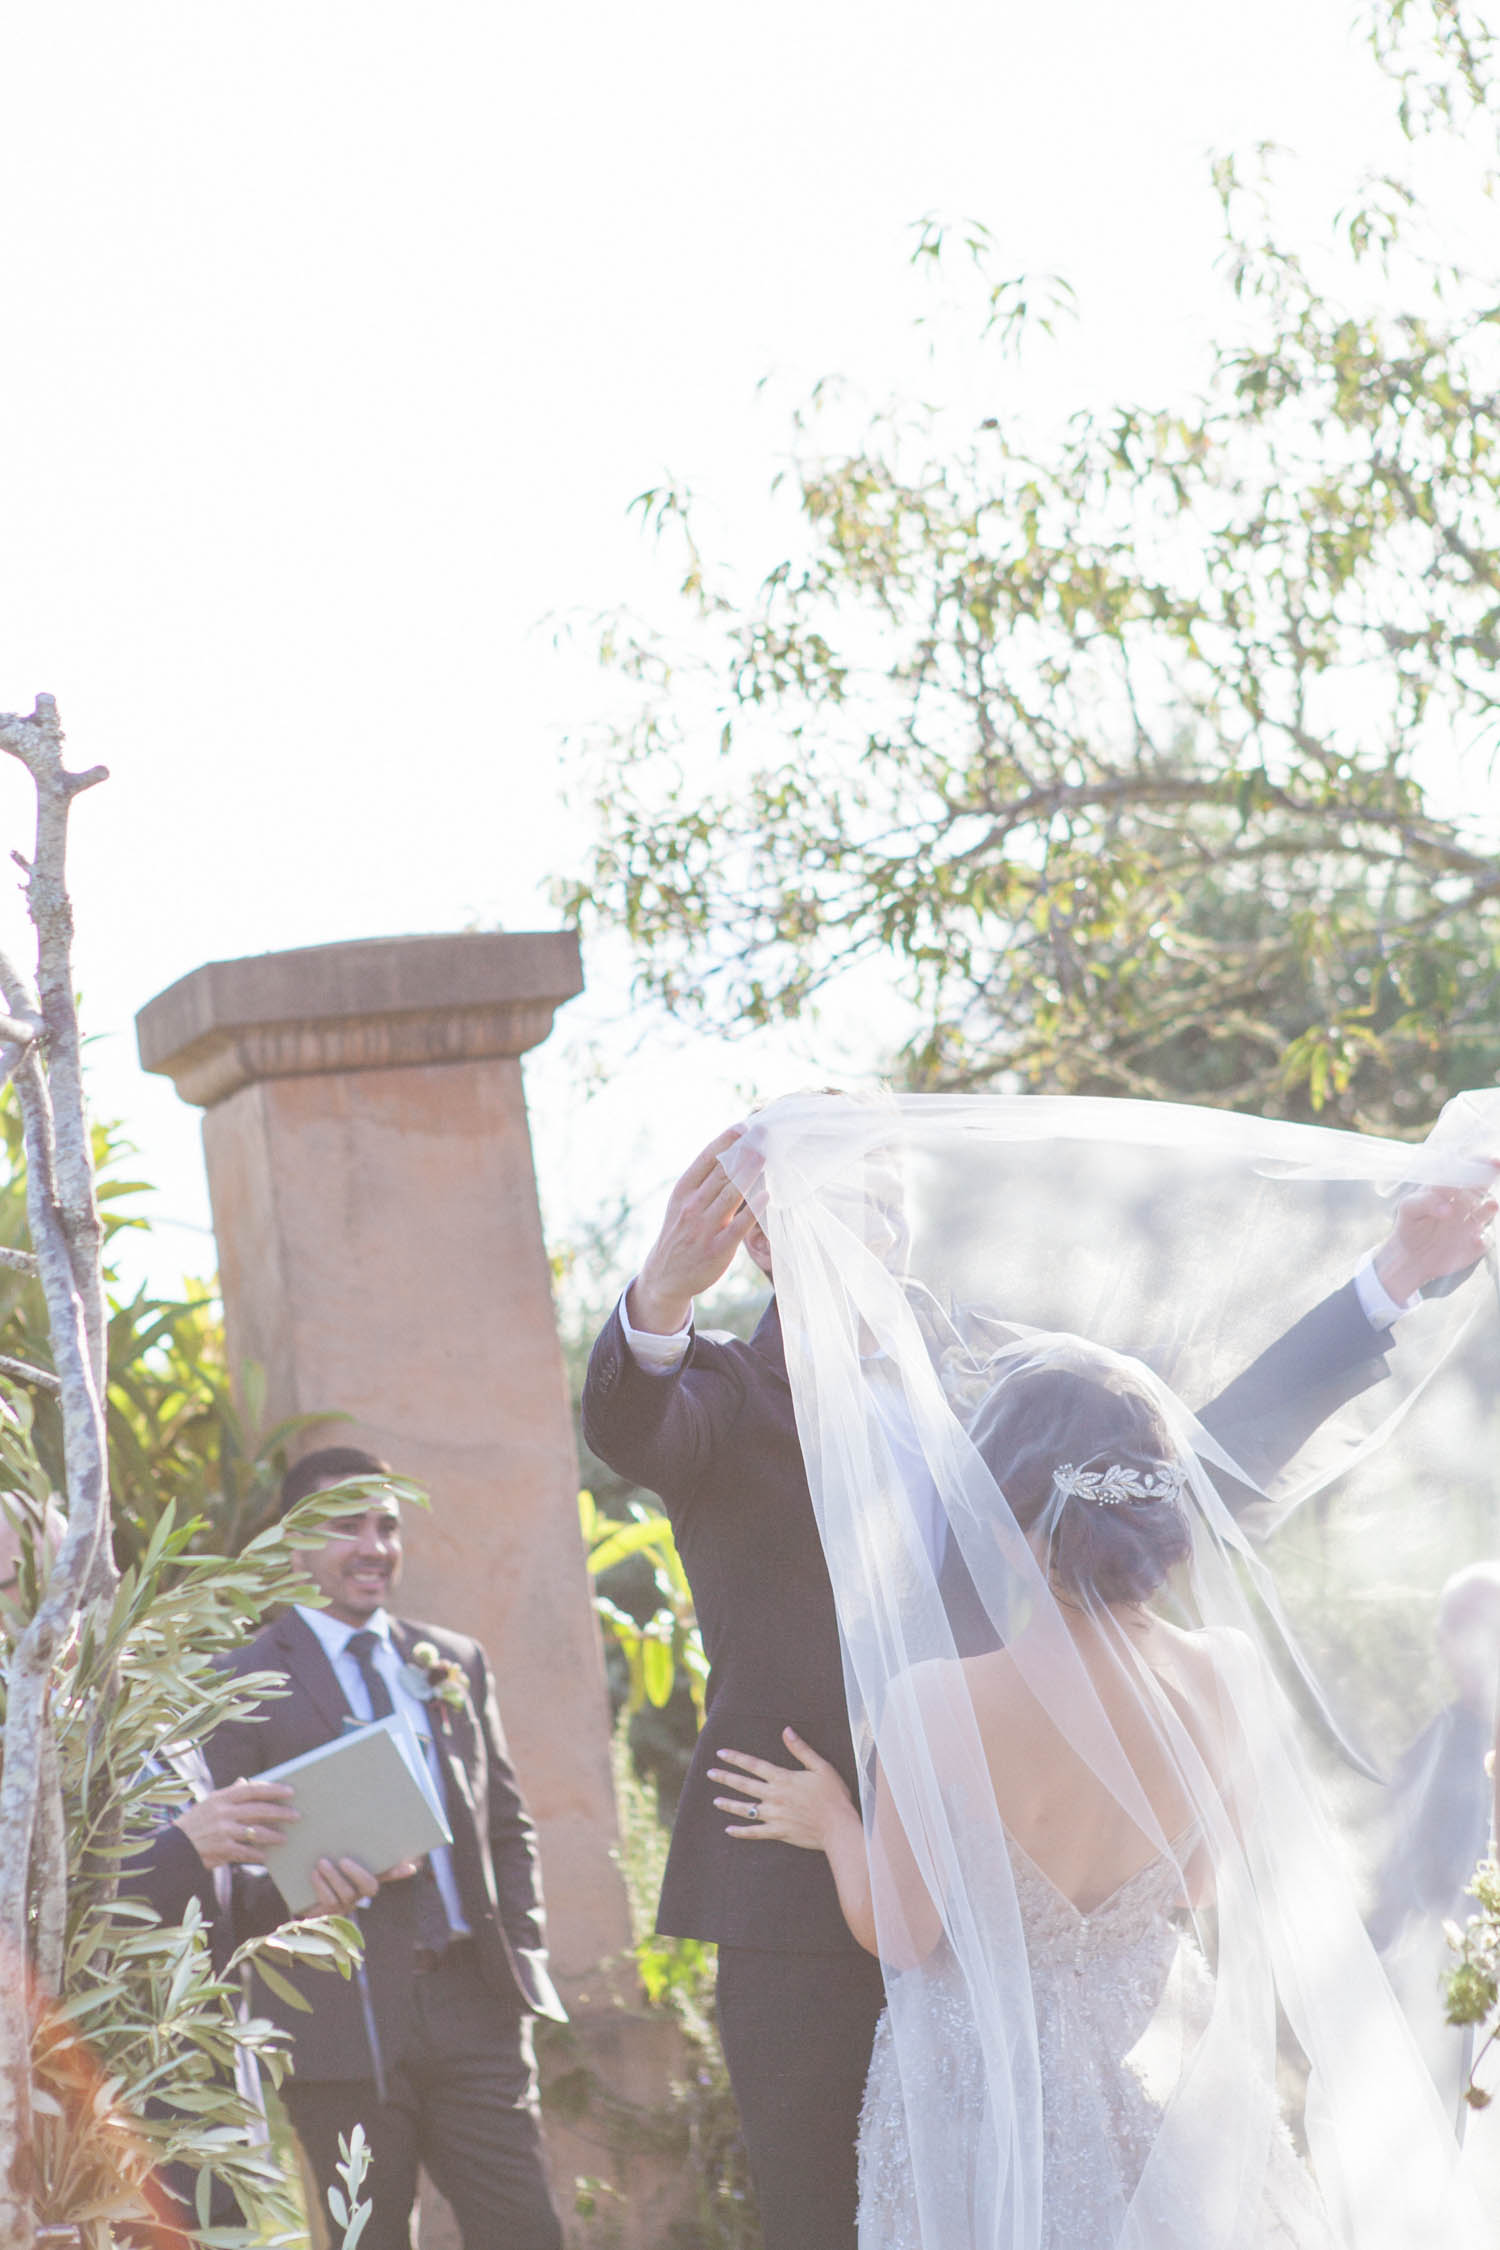 Groom takes off his Brides wedding veil to kiss her